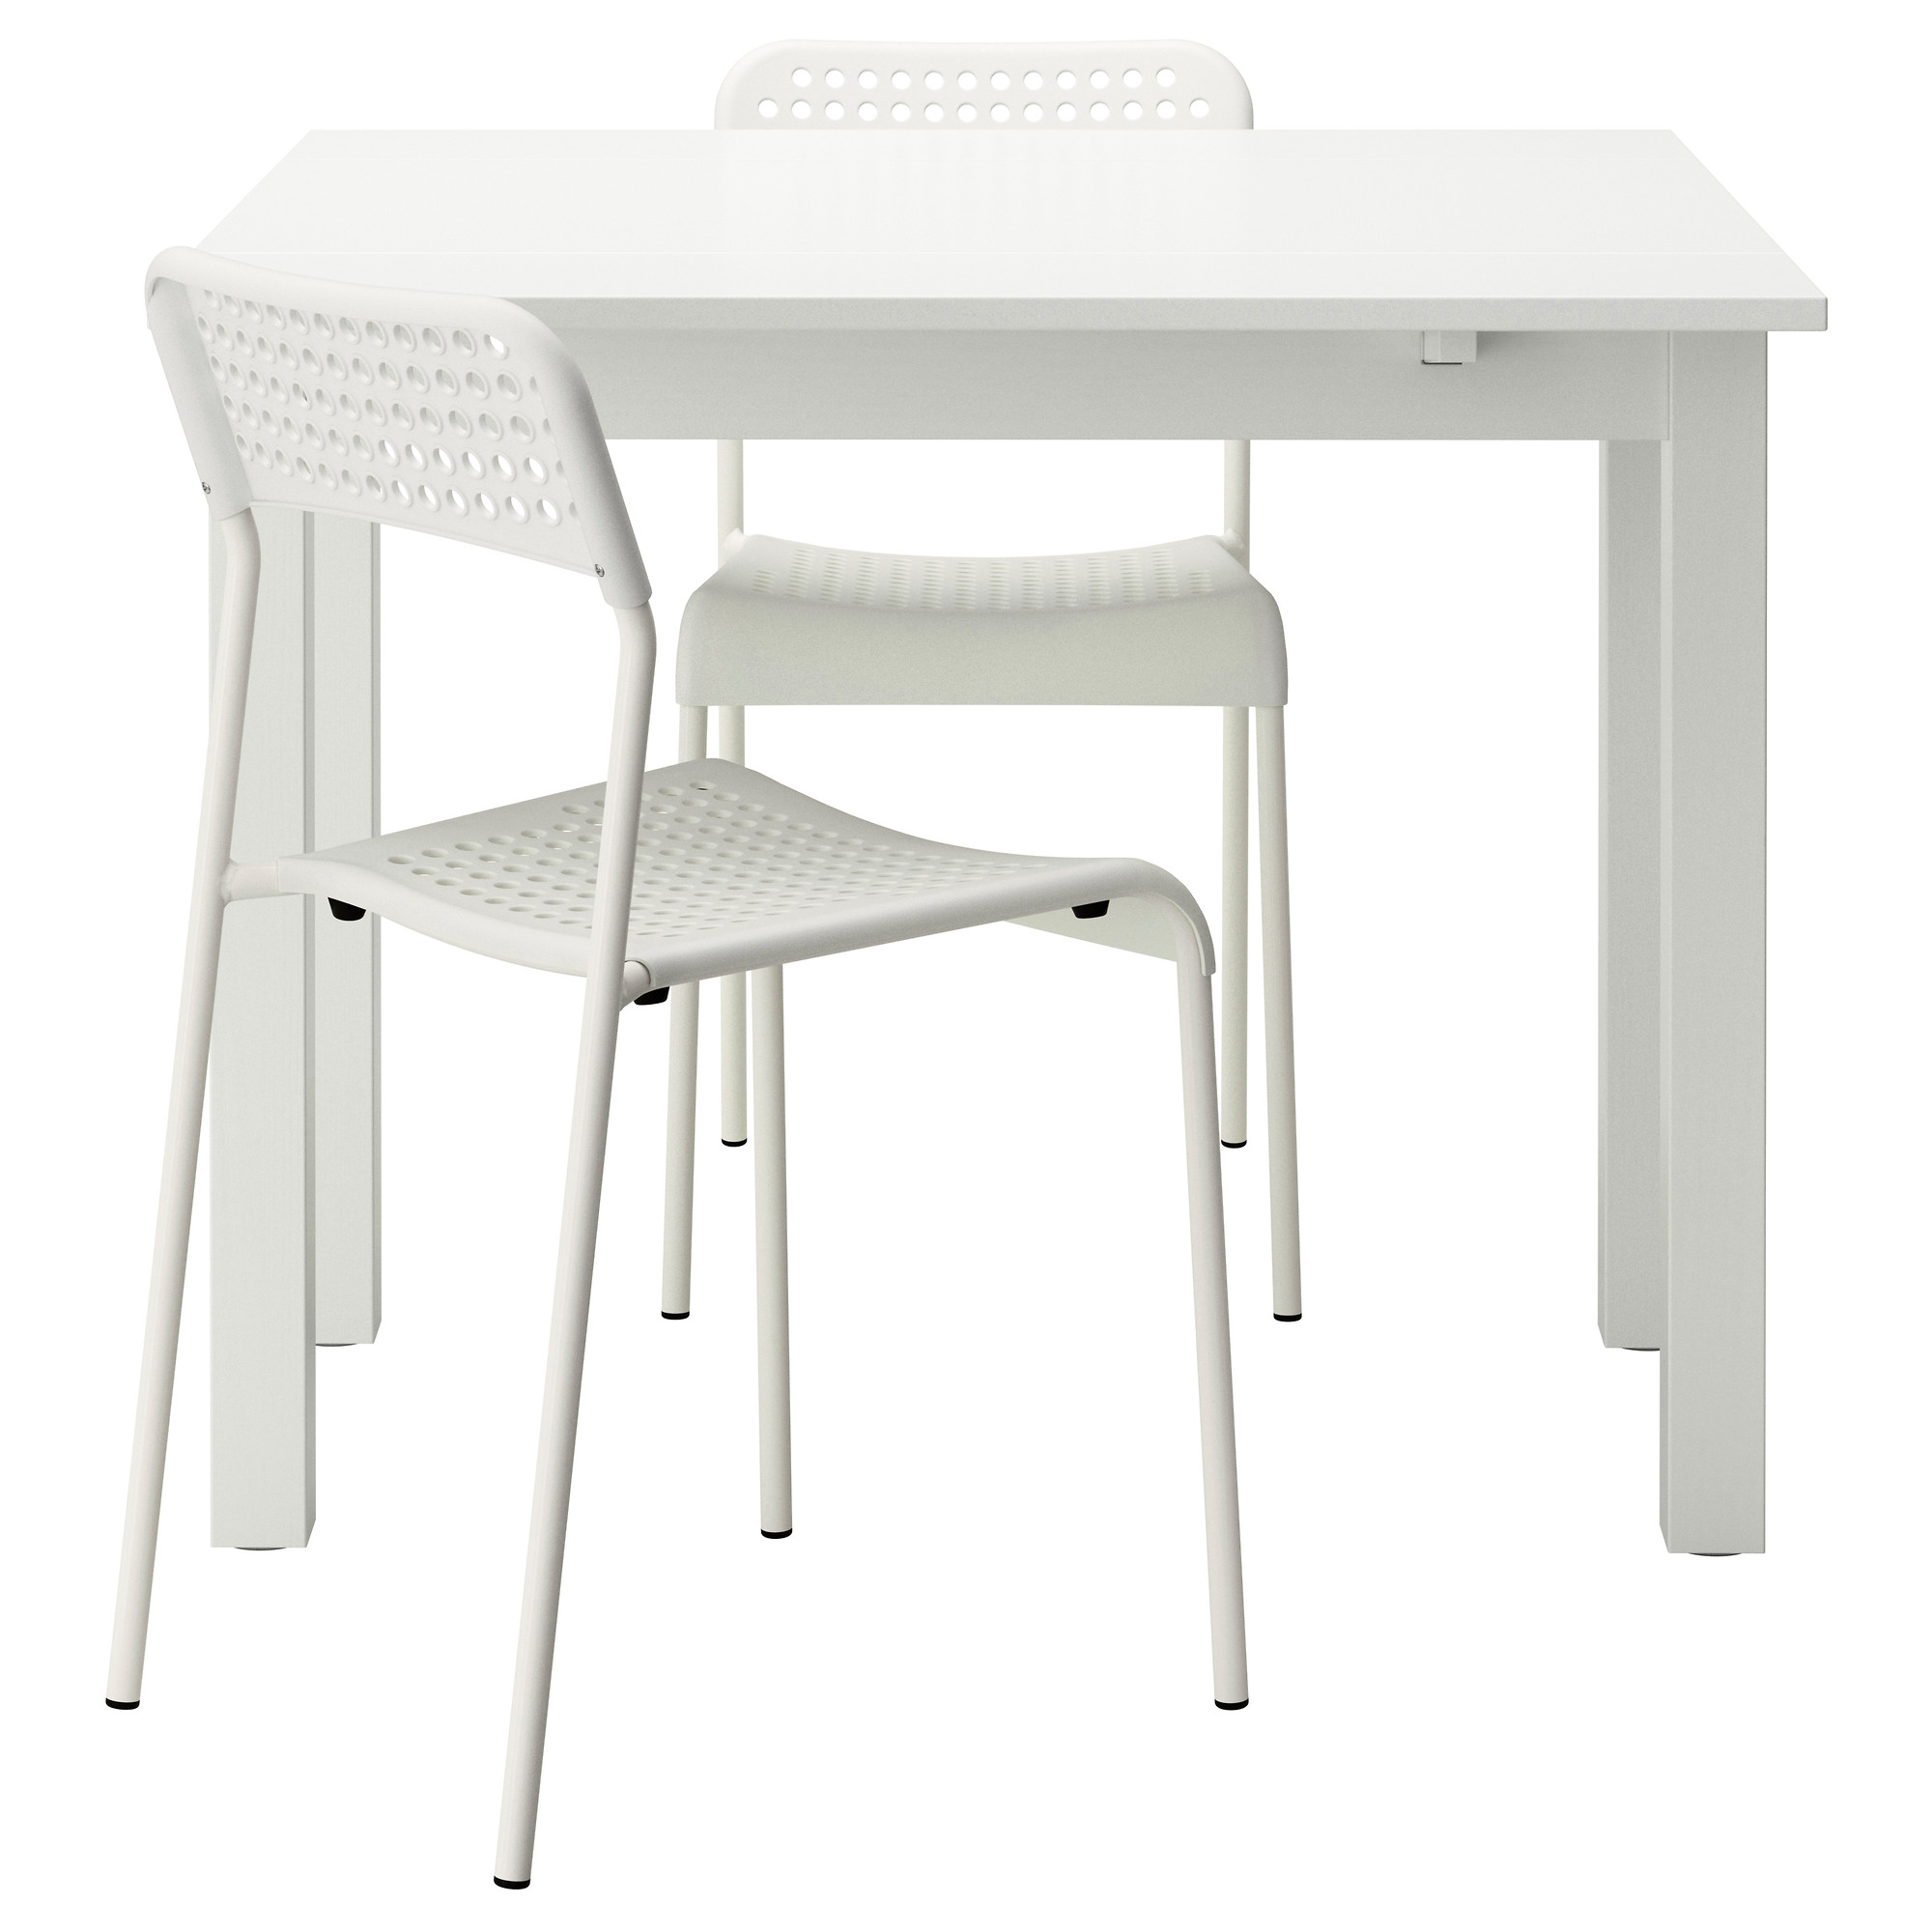 Table et chaise de cuisine ikea table chaise cuisine for Table et chaise de cuisine